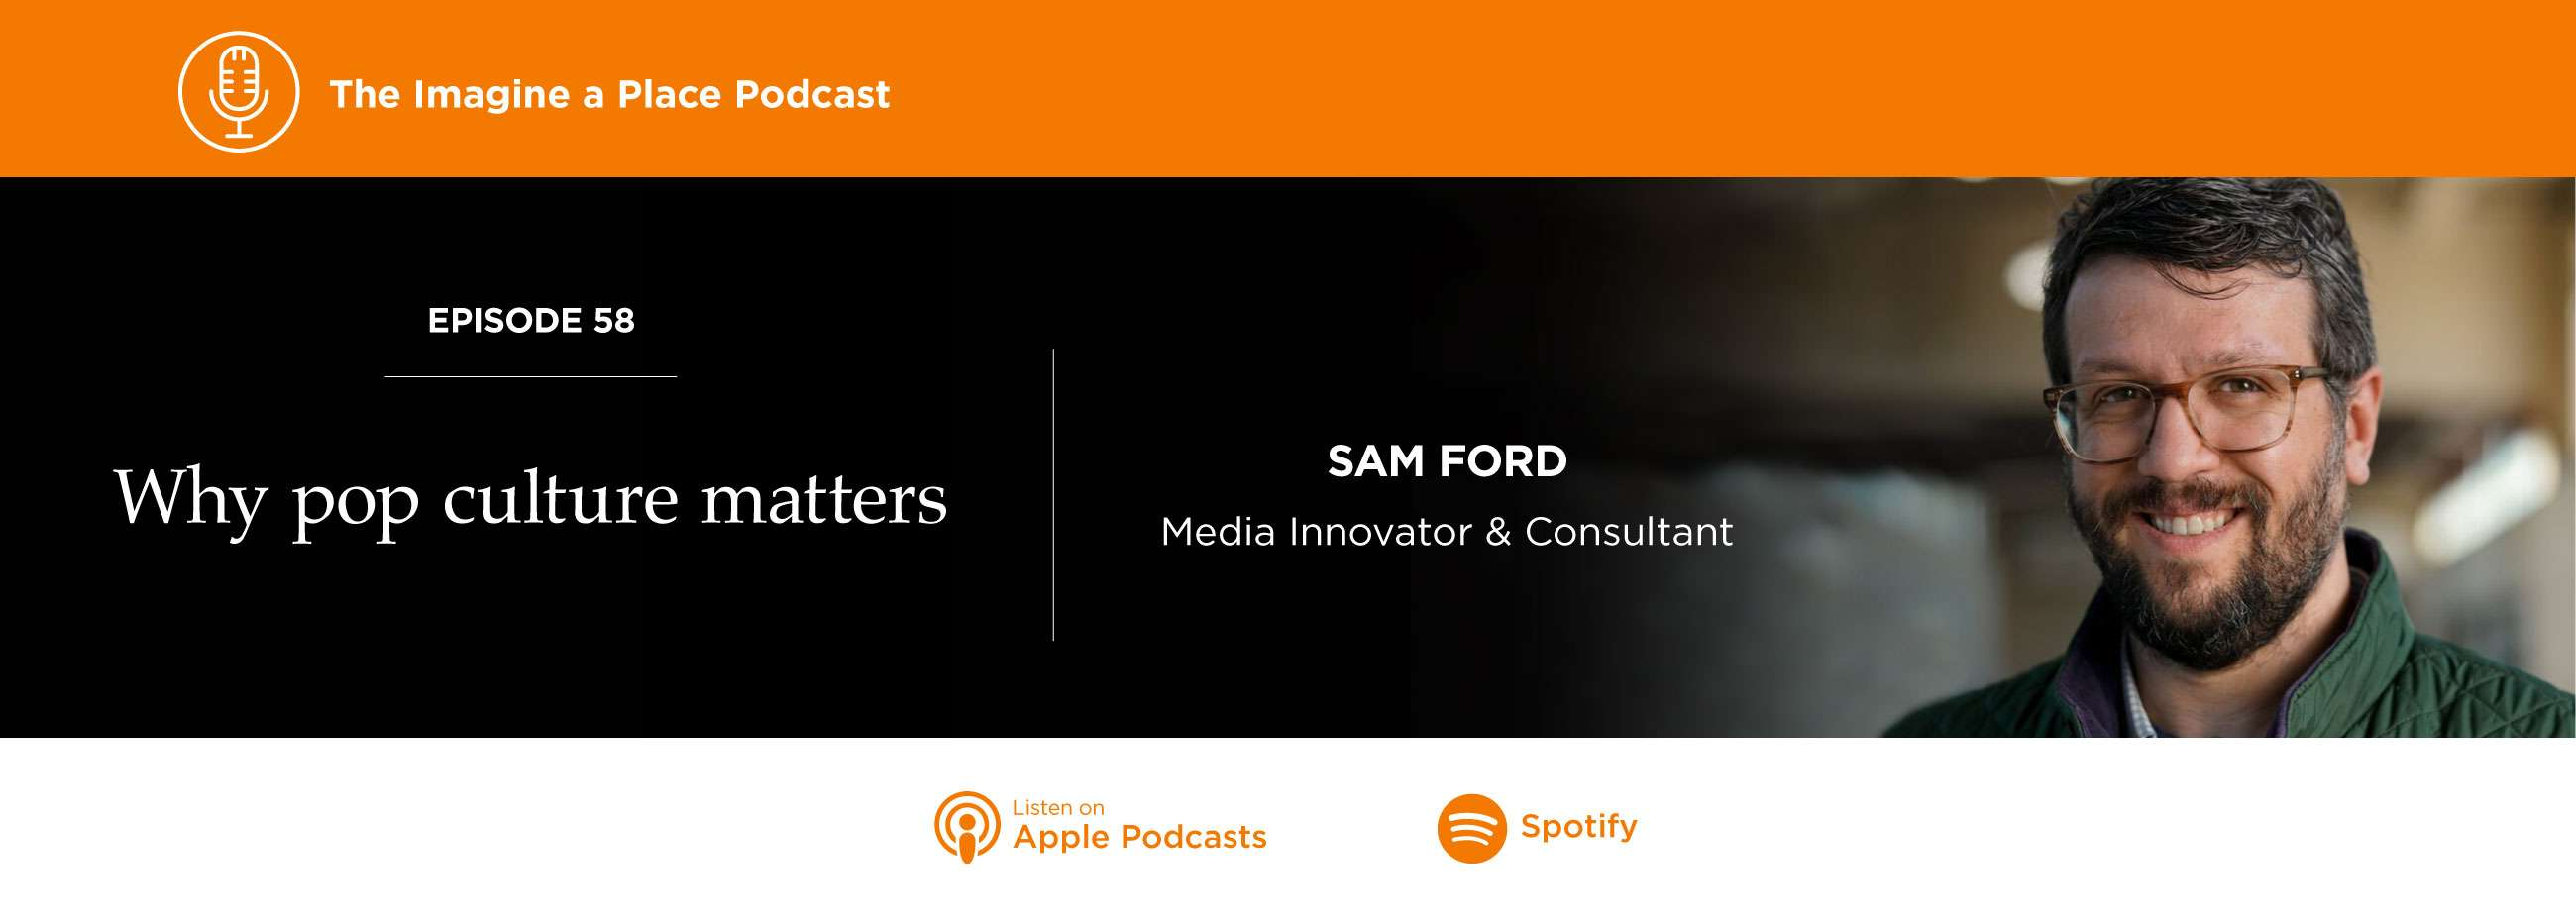 Sam Ford on the Imagine a Place podcast